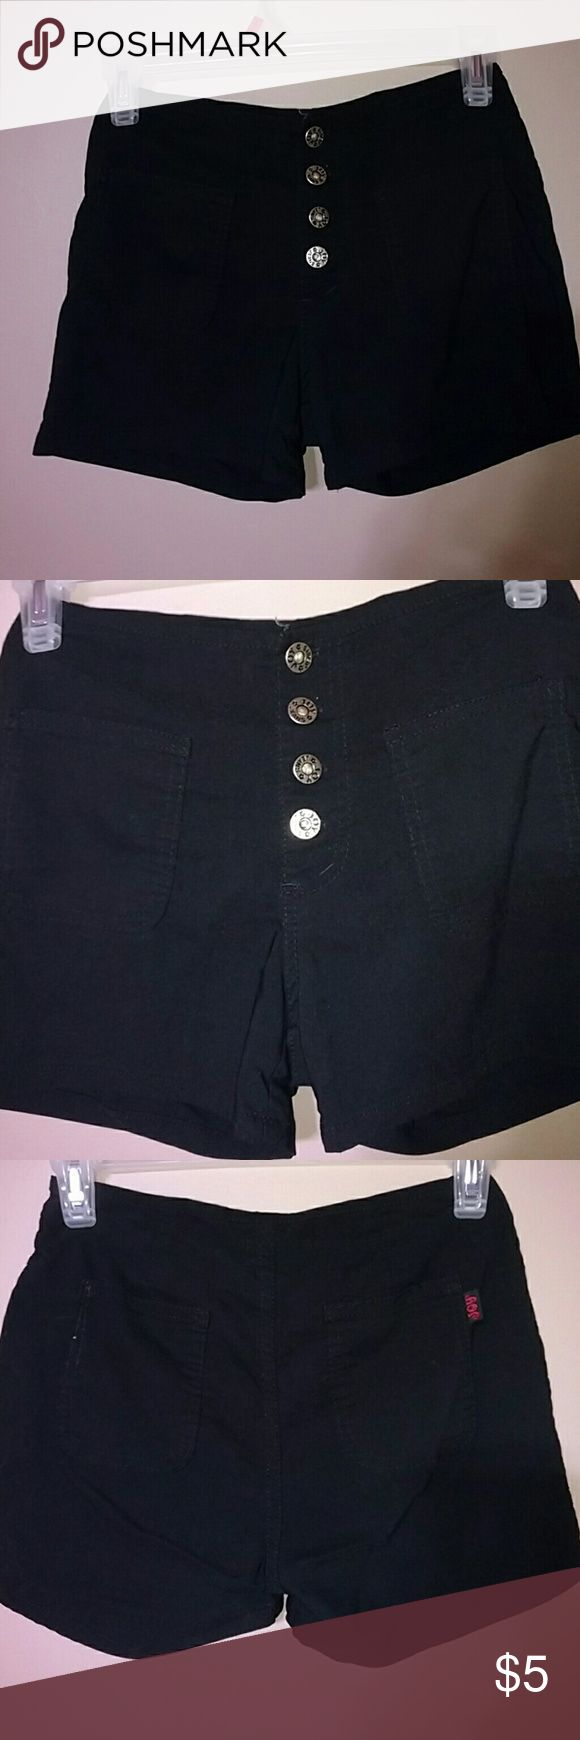 Black Mini Shorts Joy Jeans Black Mini Shorts Joy Jeans Shorts